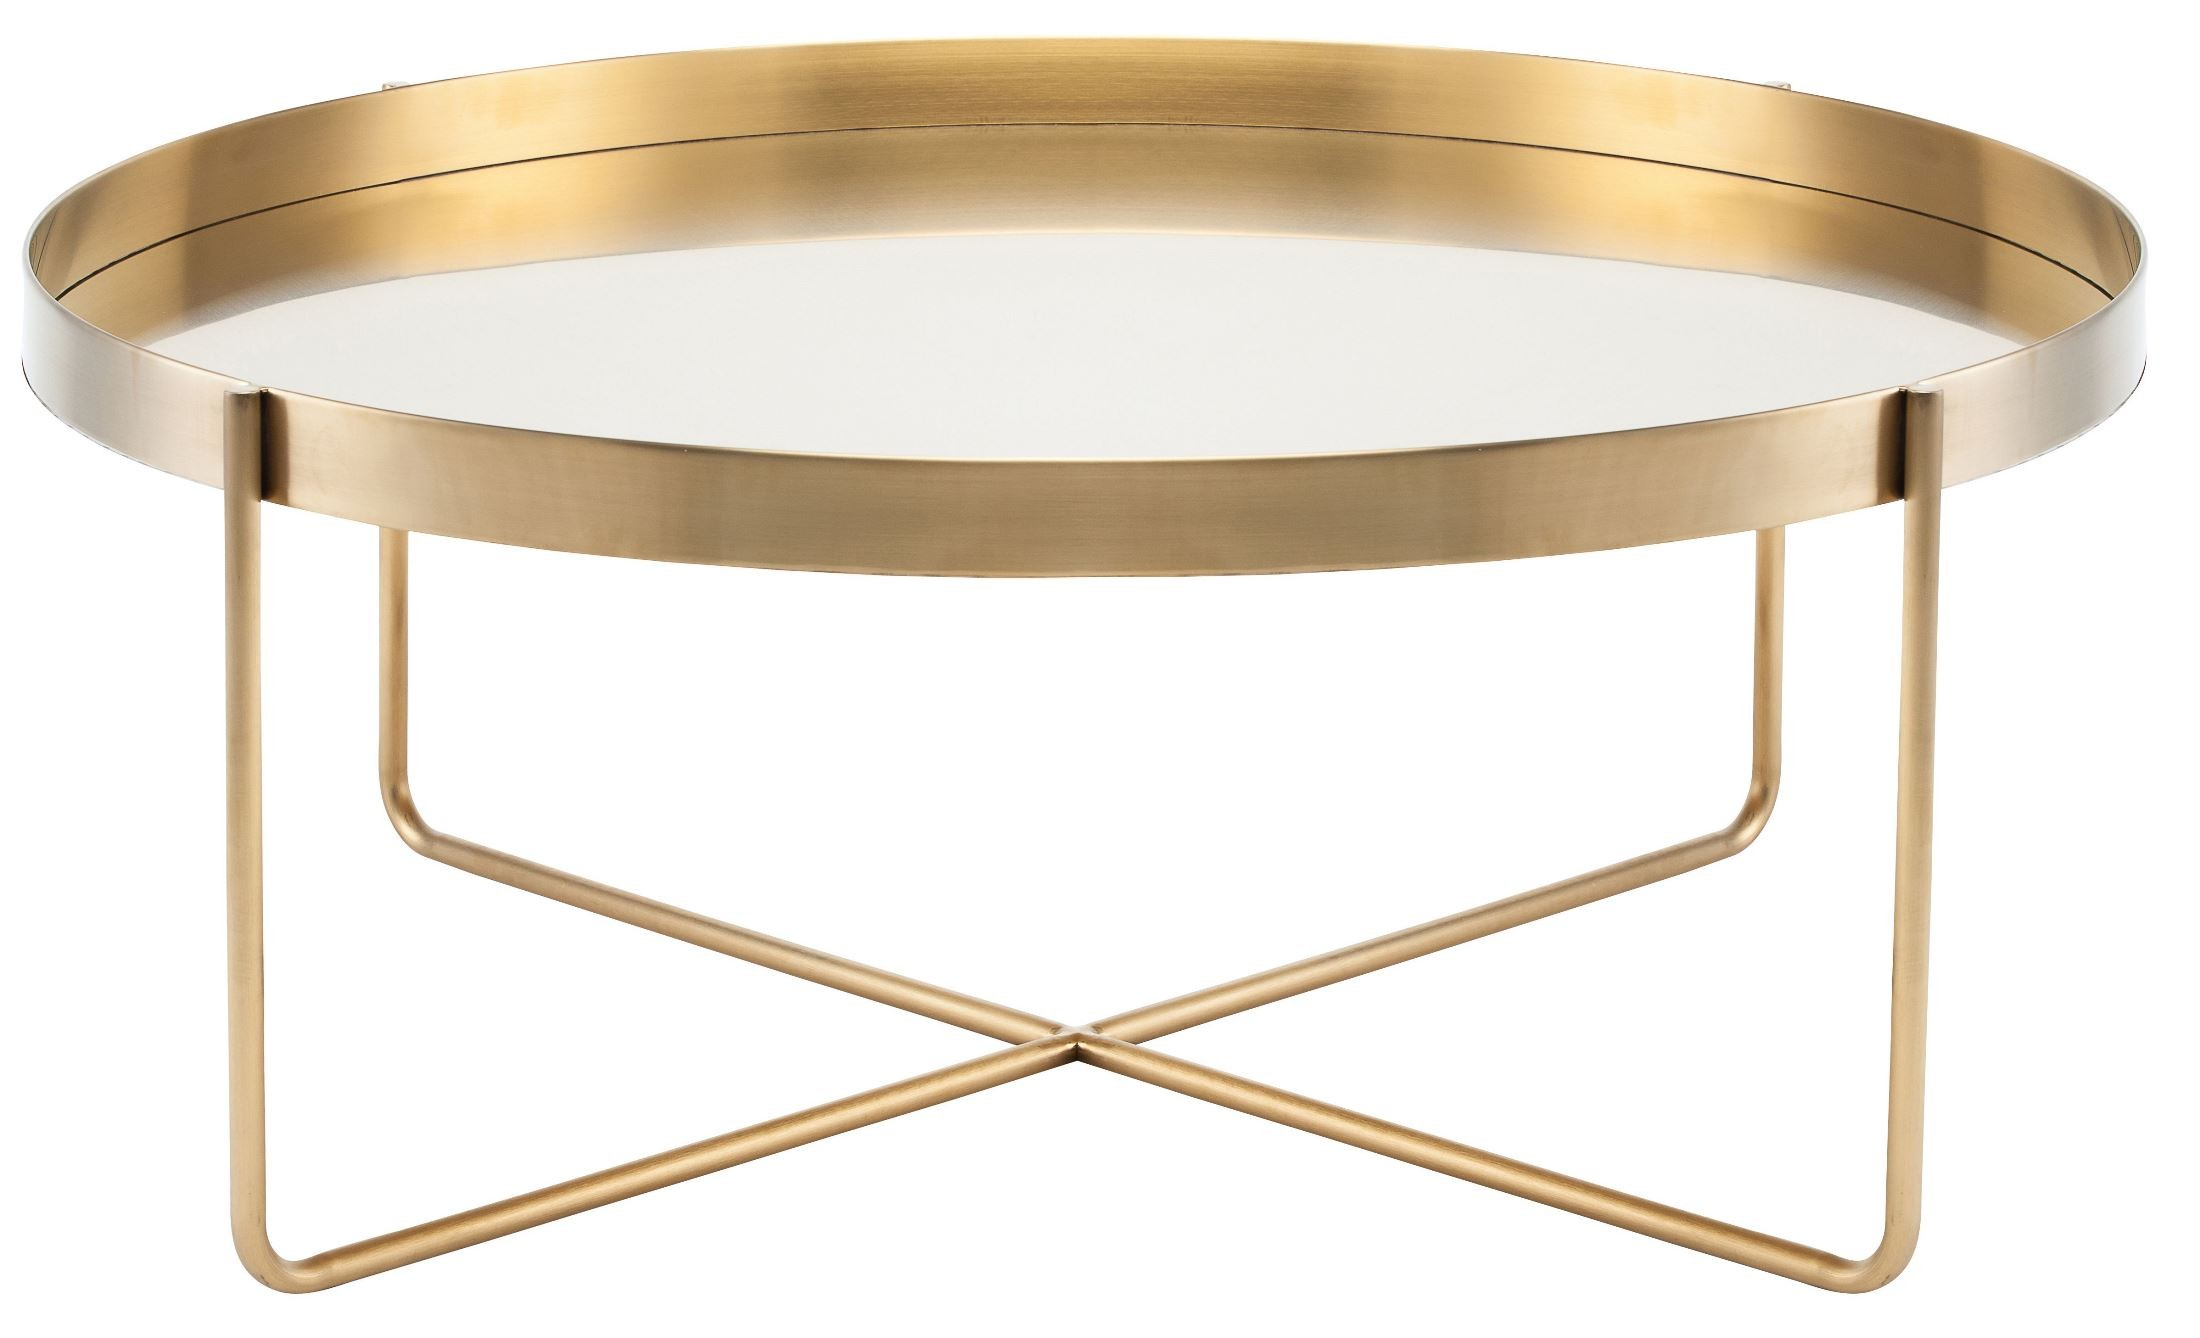 Gaultier 40 gold metal coffee table hgde122 nuevo Gold metal coffee table